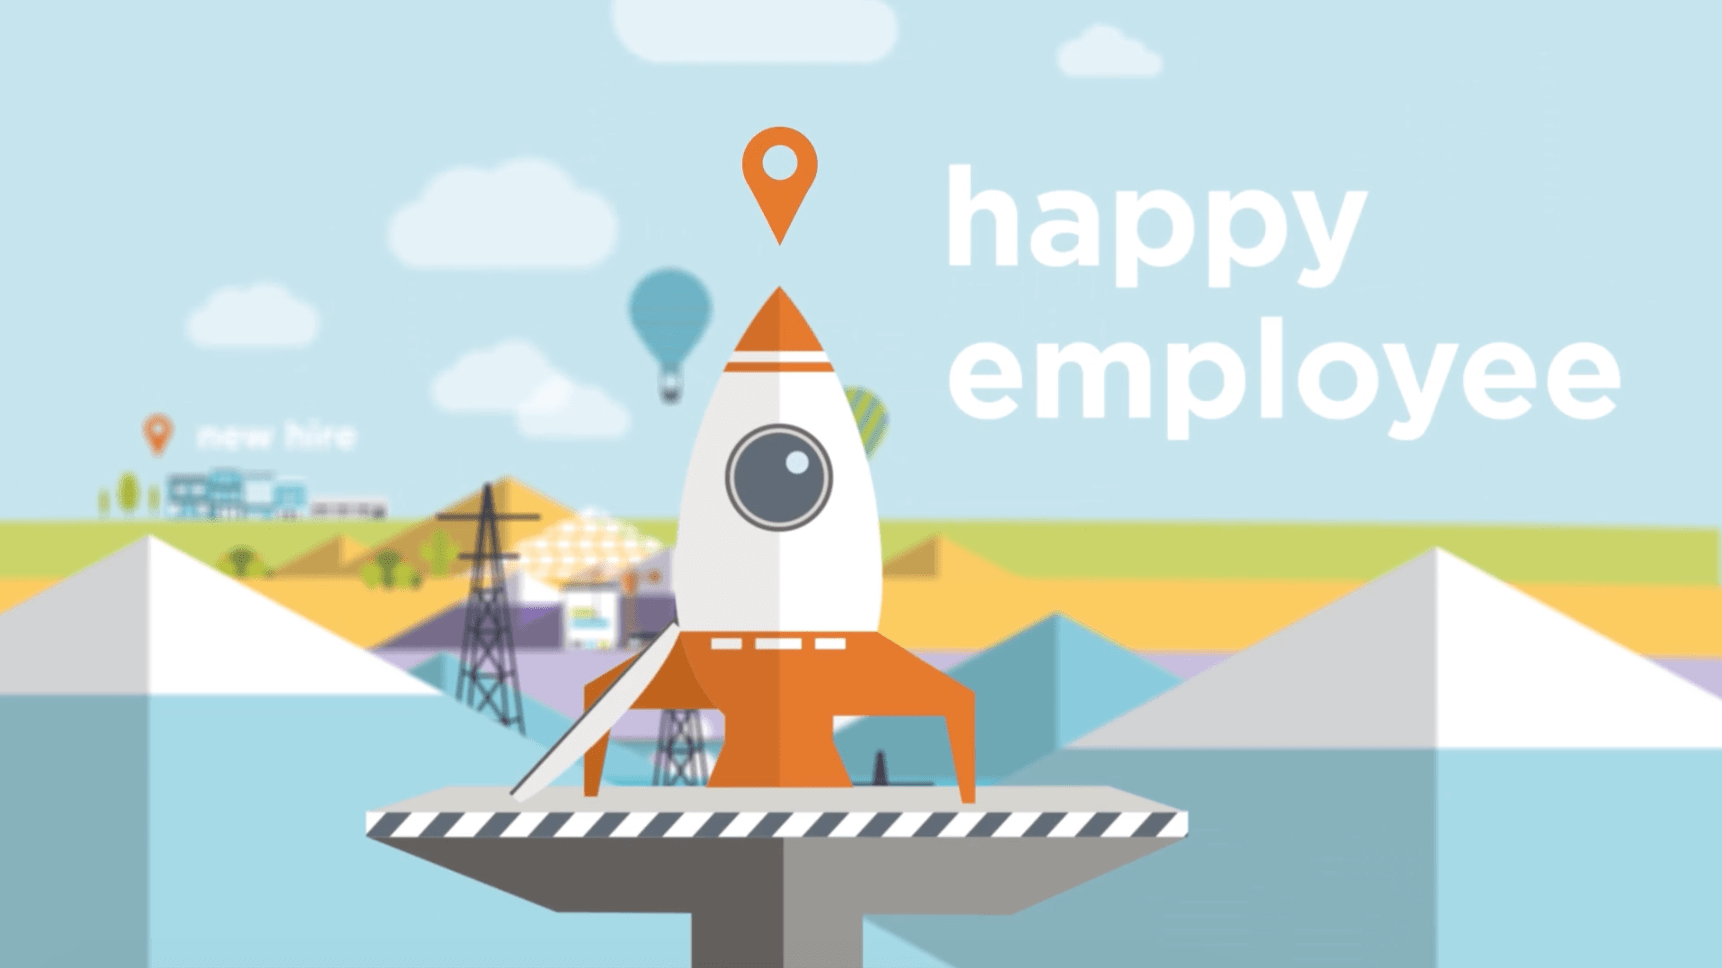 Rocket with text                                                         happy employee